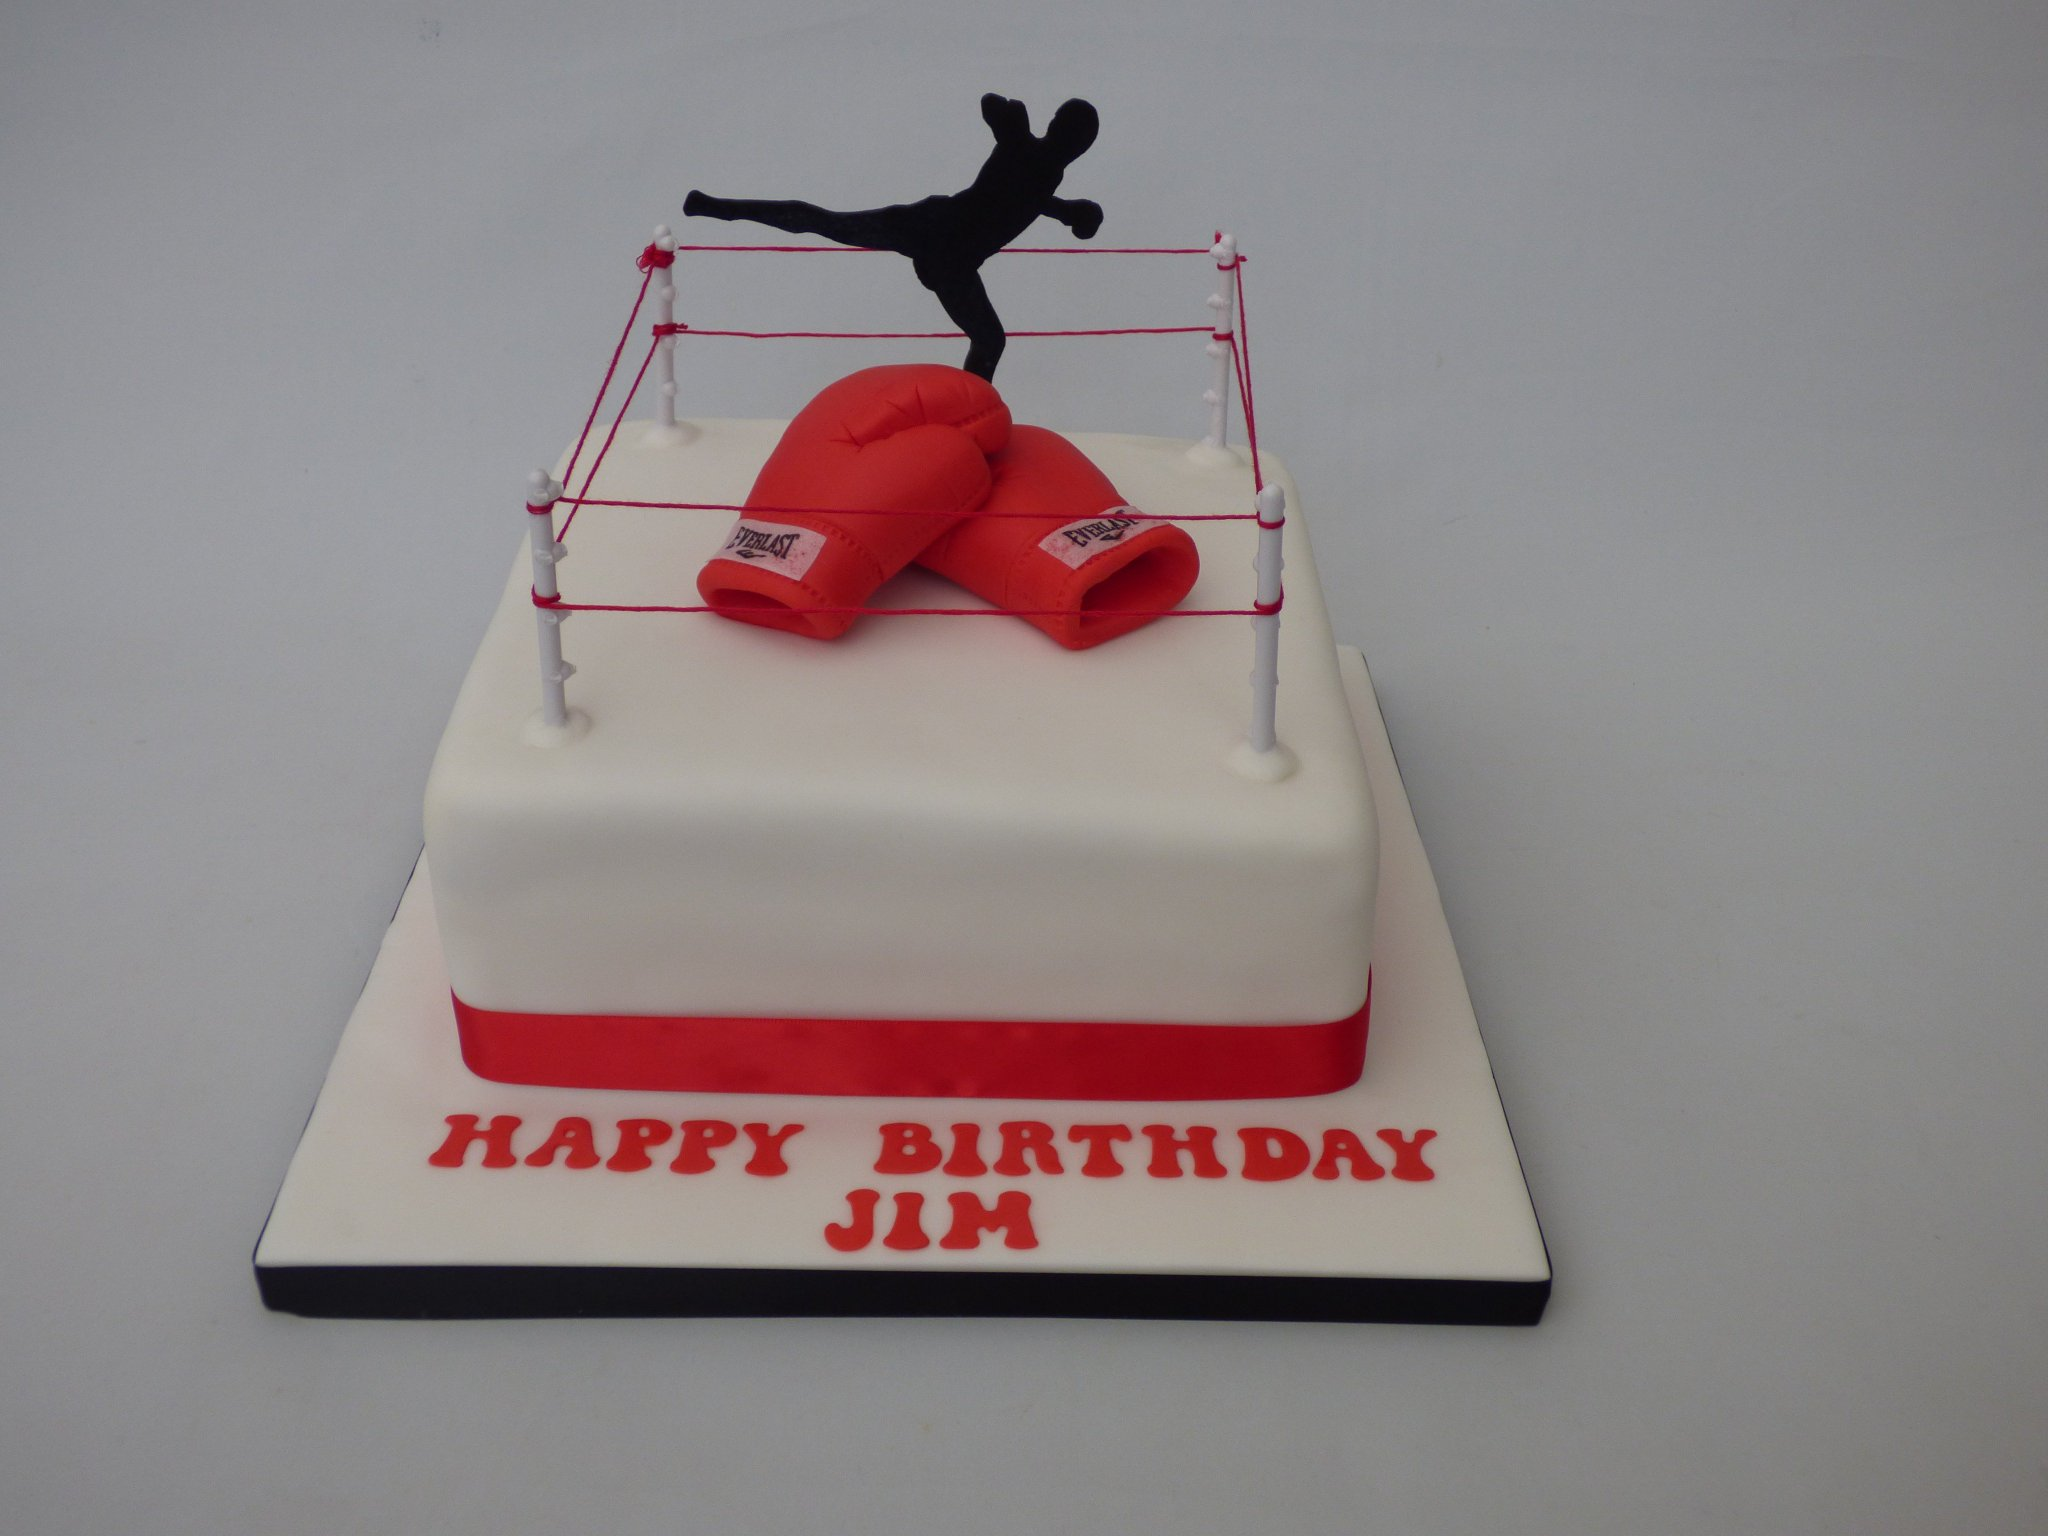 Mia Taggart On Twitter A Birthday Cake For A Kick Boxer